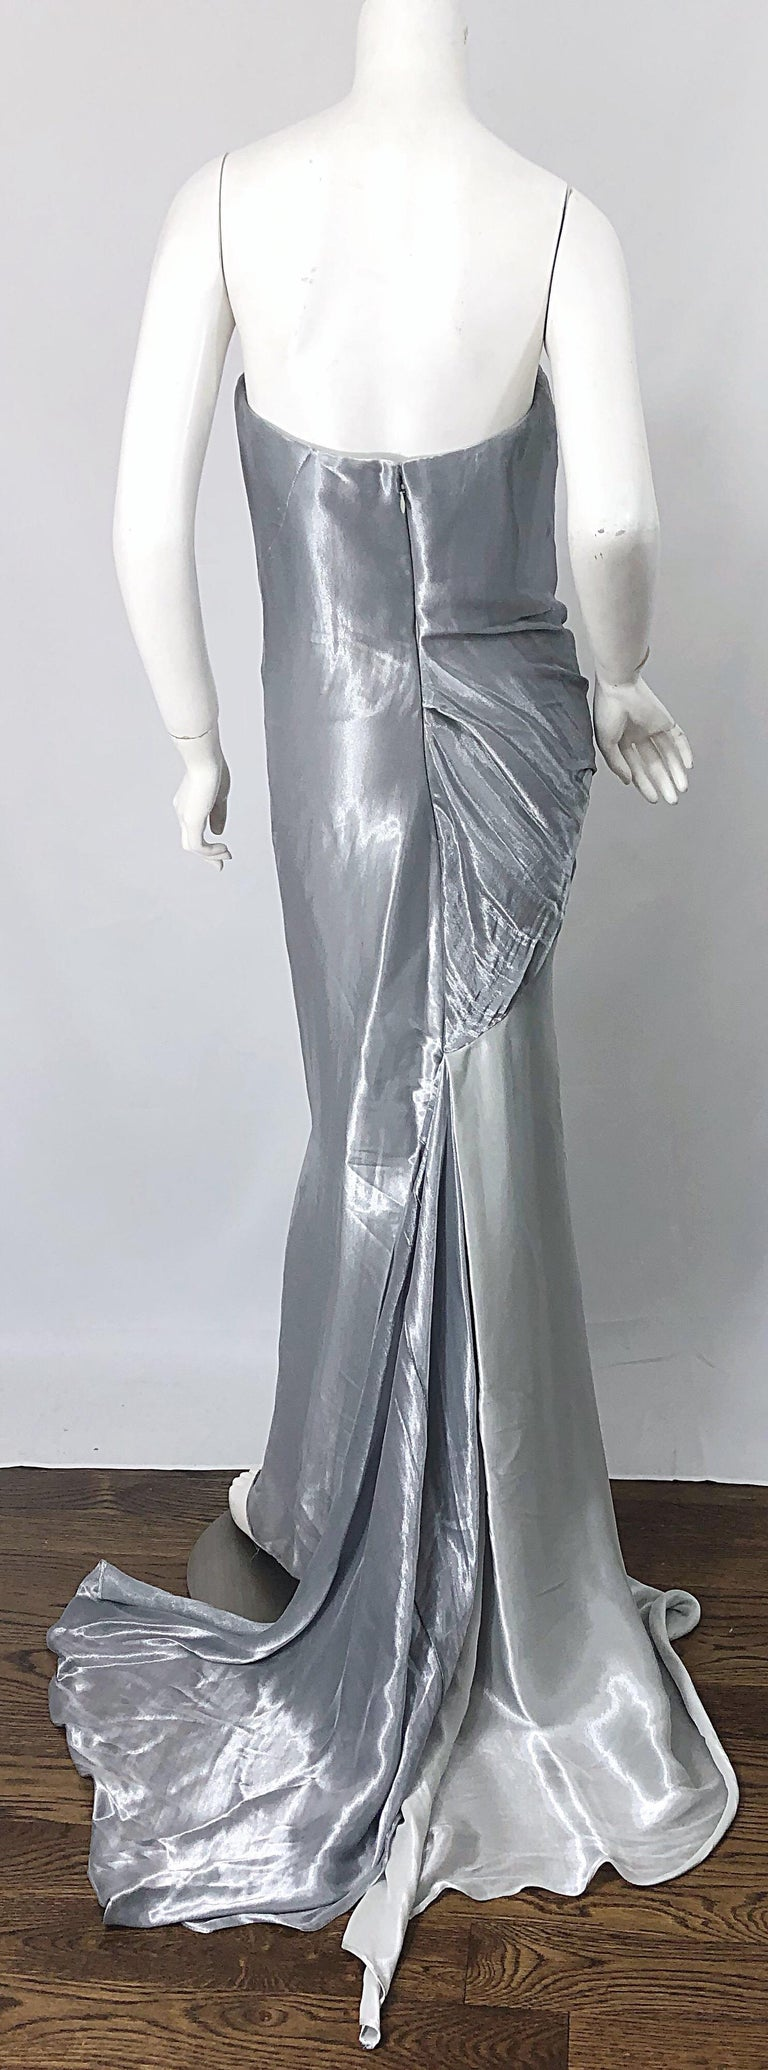 Donna Karan 1990s Size 4 Silver Grecian Metallic Strapless Vintage Silk 90s Gown In Excellent Condition For Sale In Chicago, IL